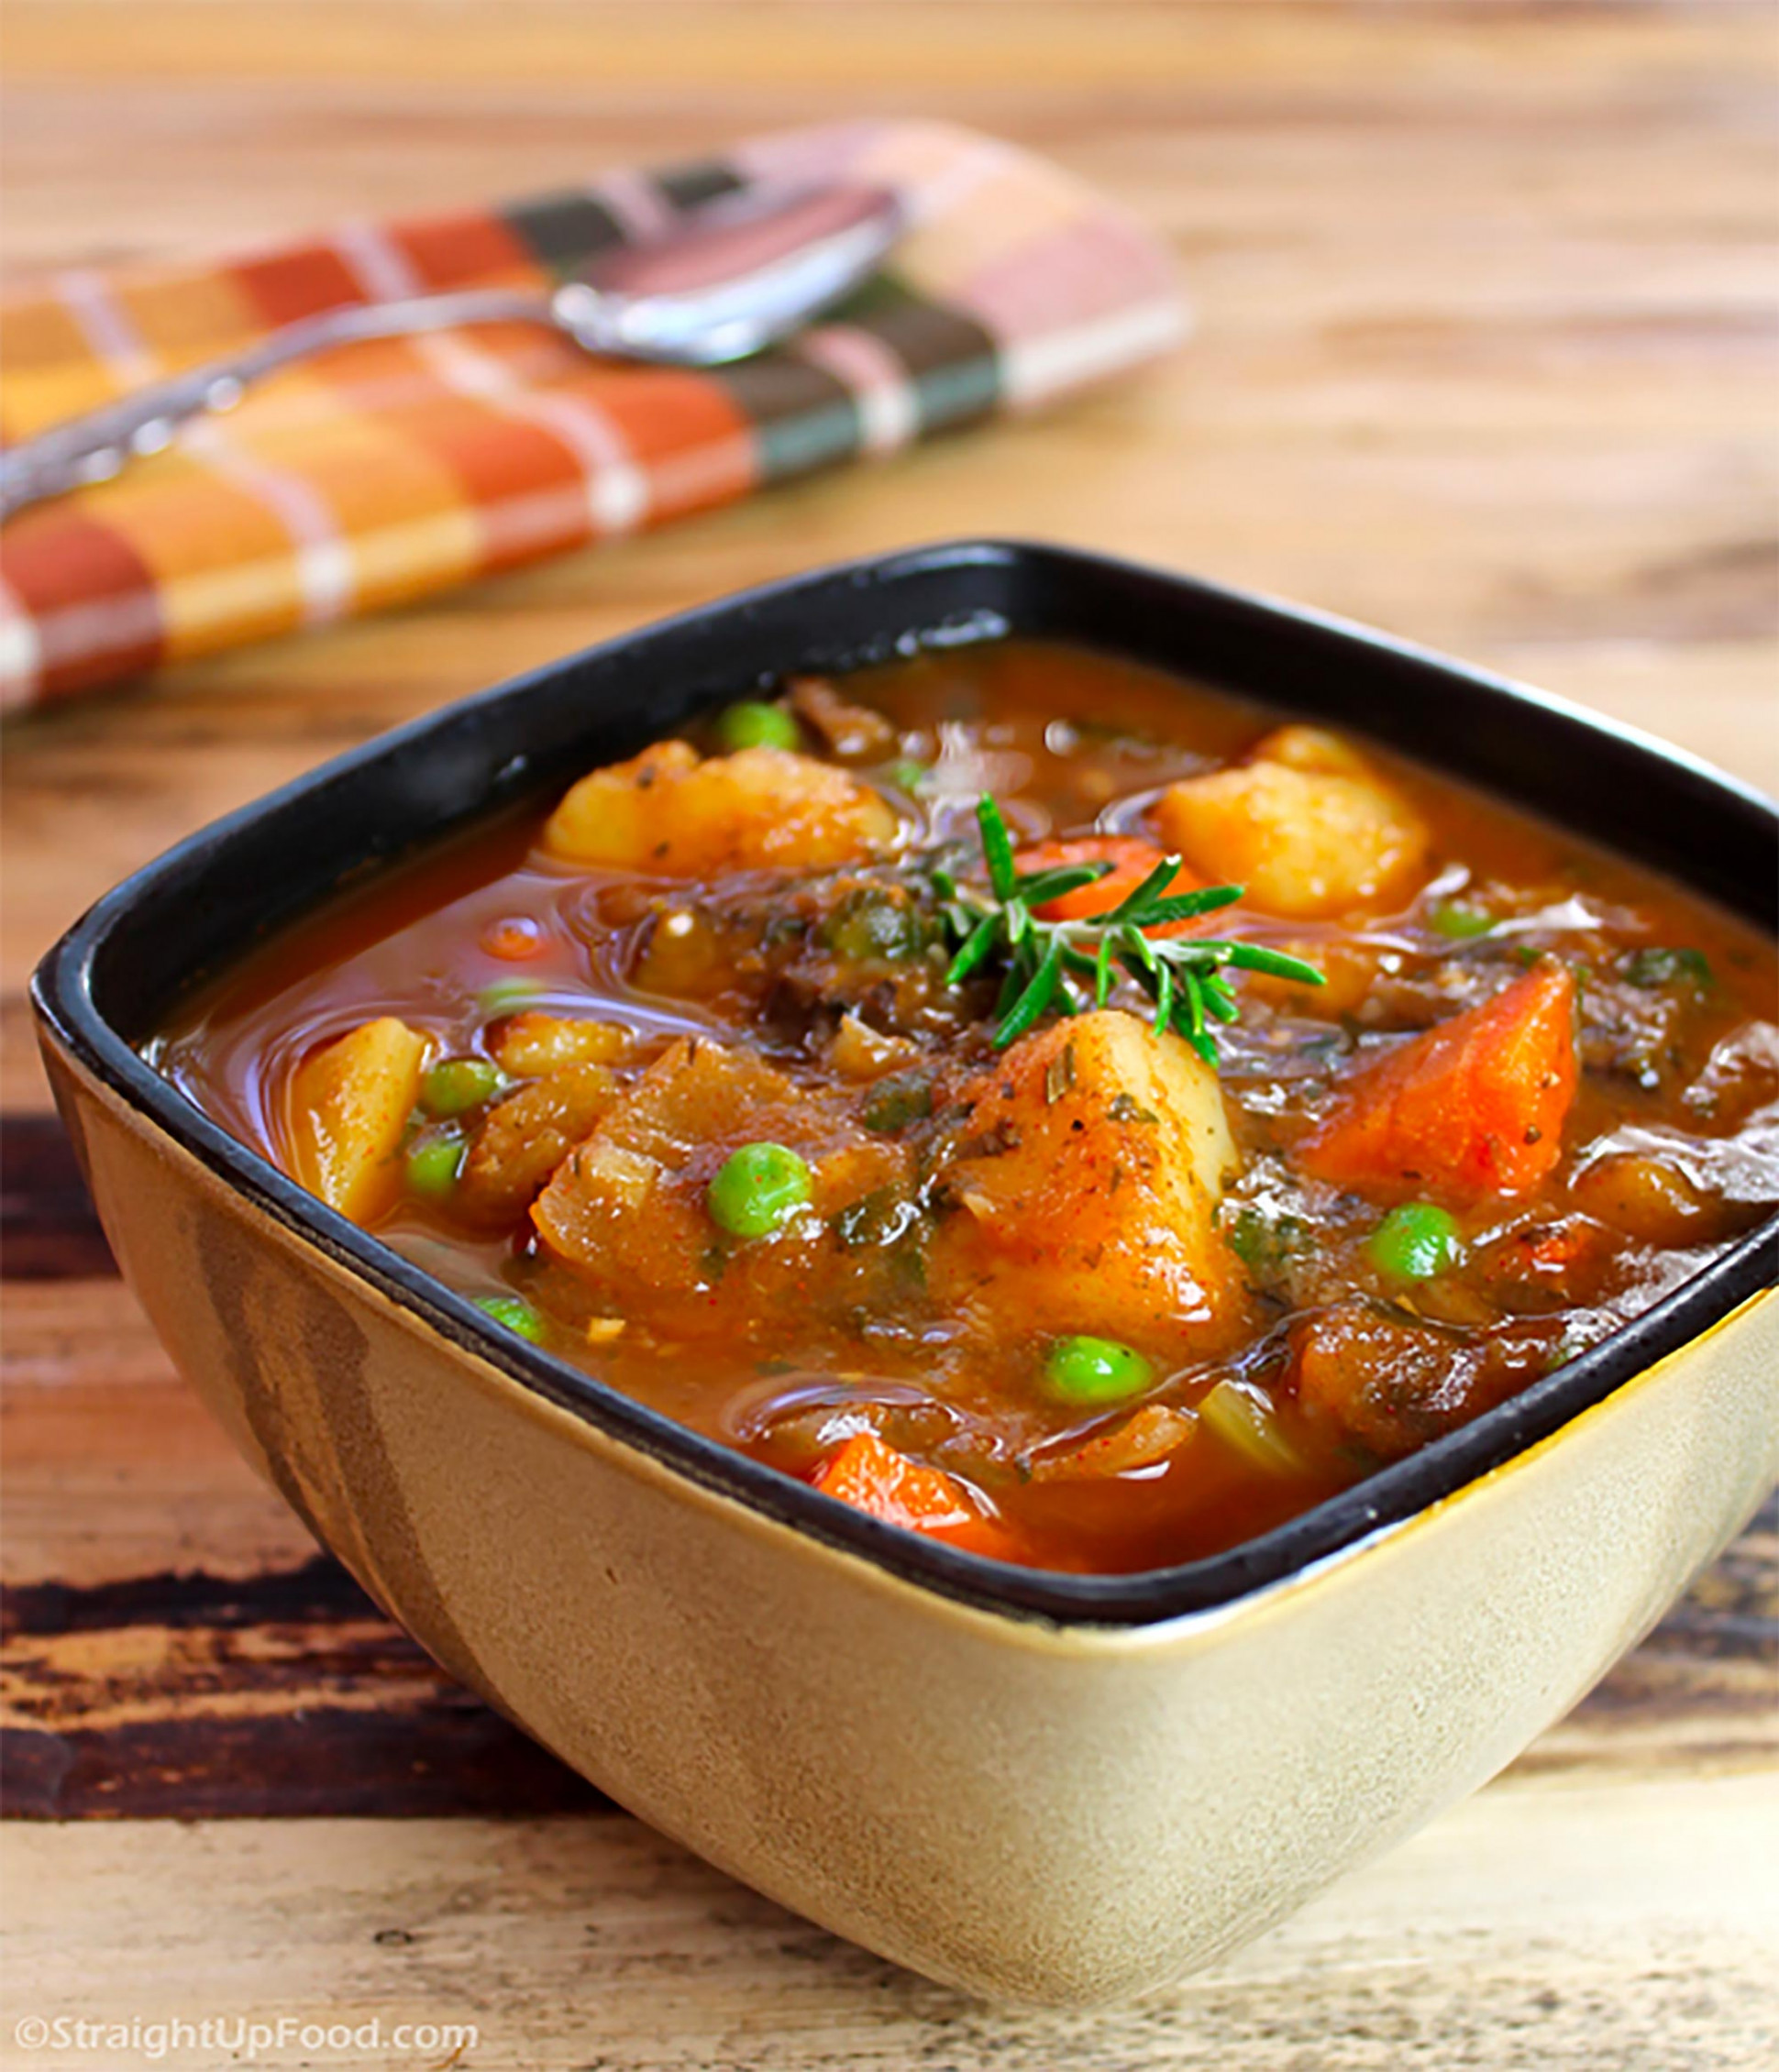 Healthy Vegan Winter Soup Recipes to Keep You Warm This Winter - winter soup recipes vegetarian